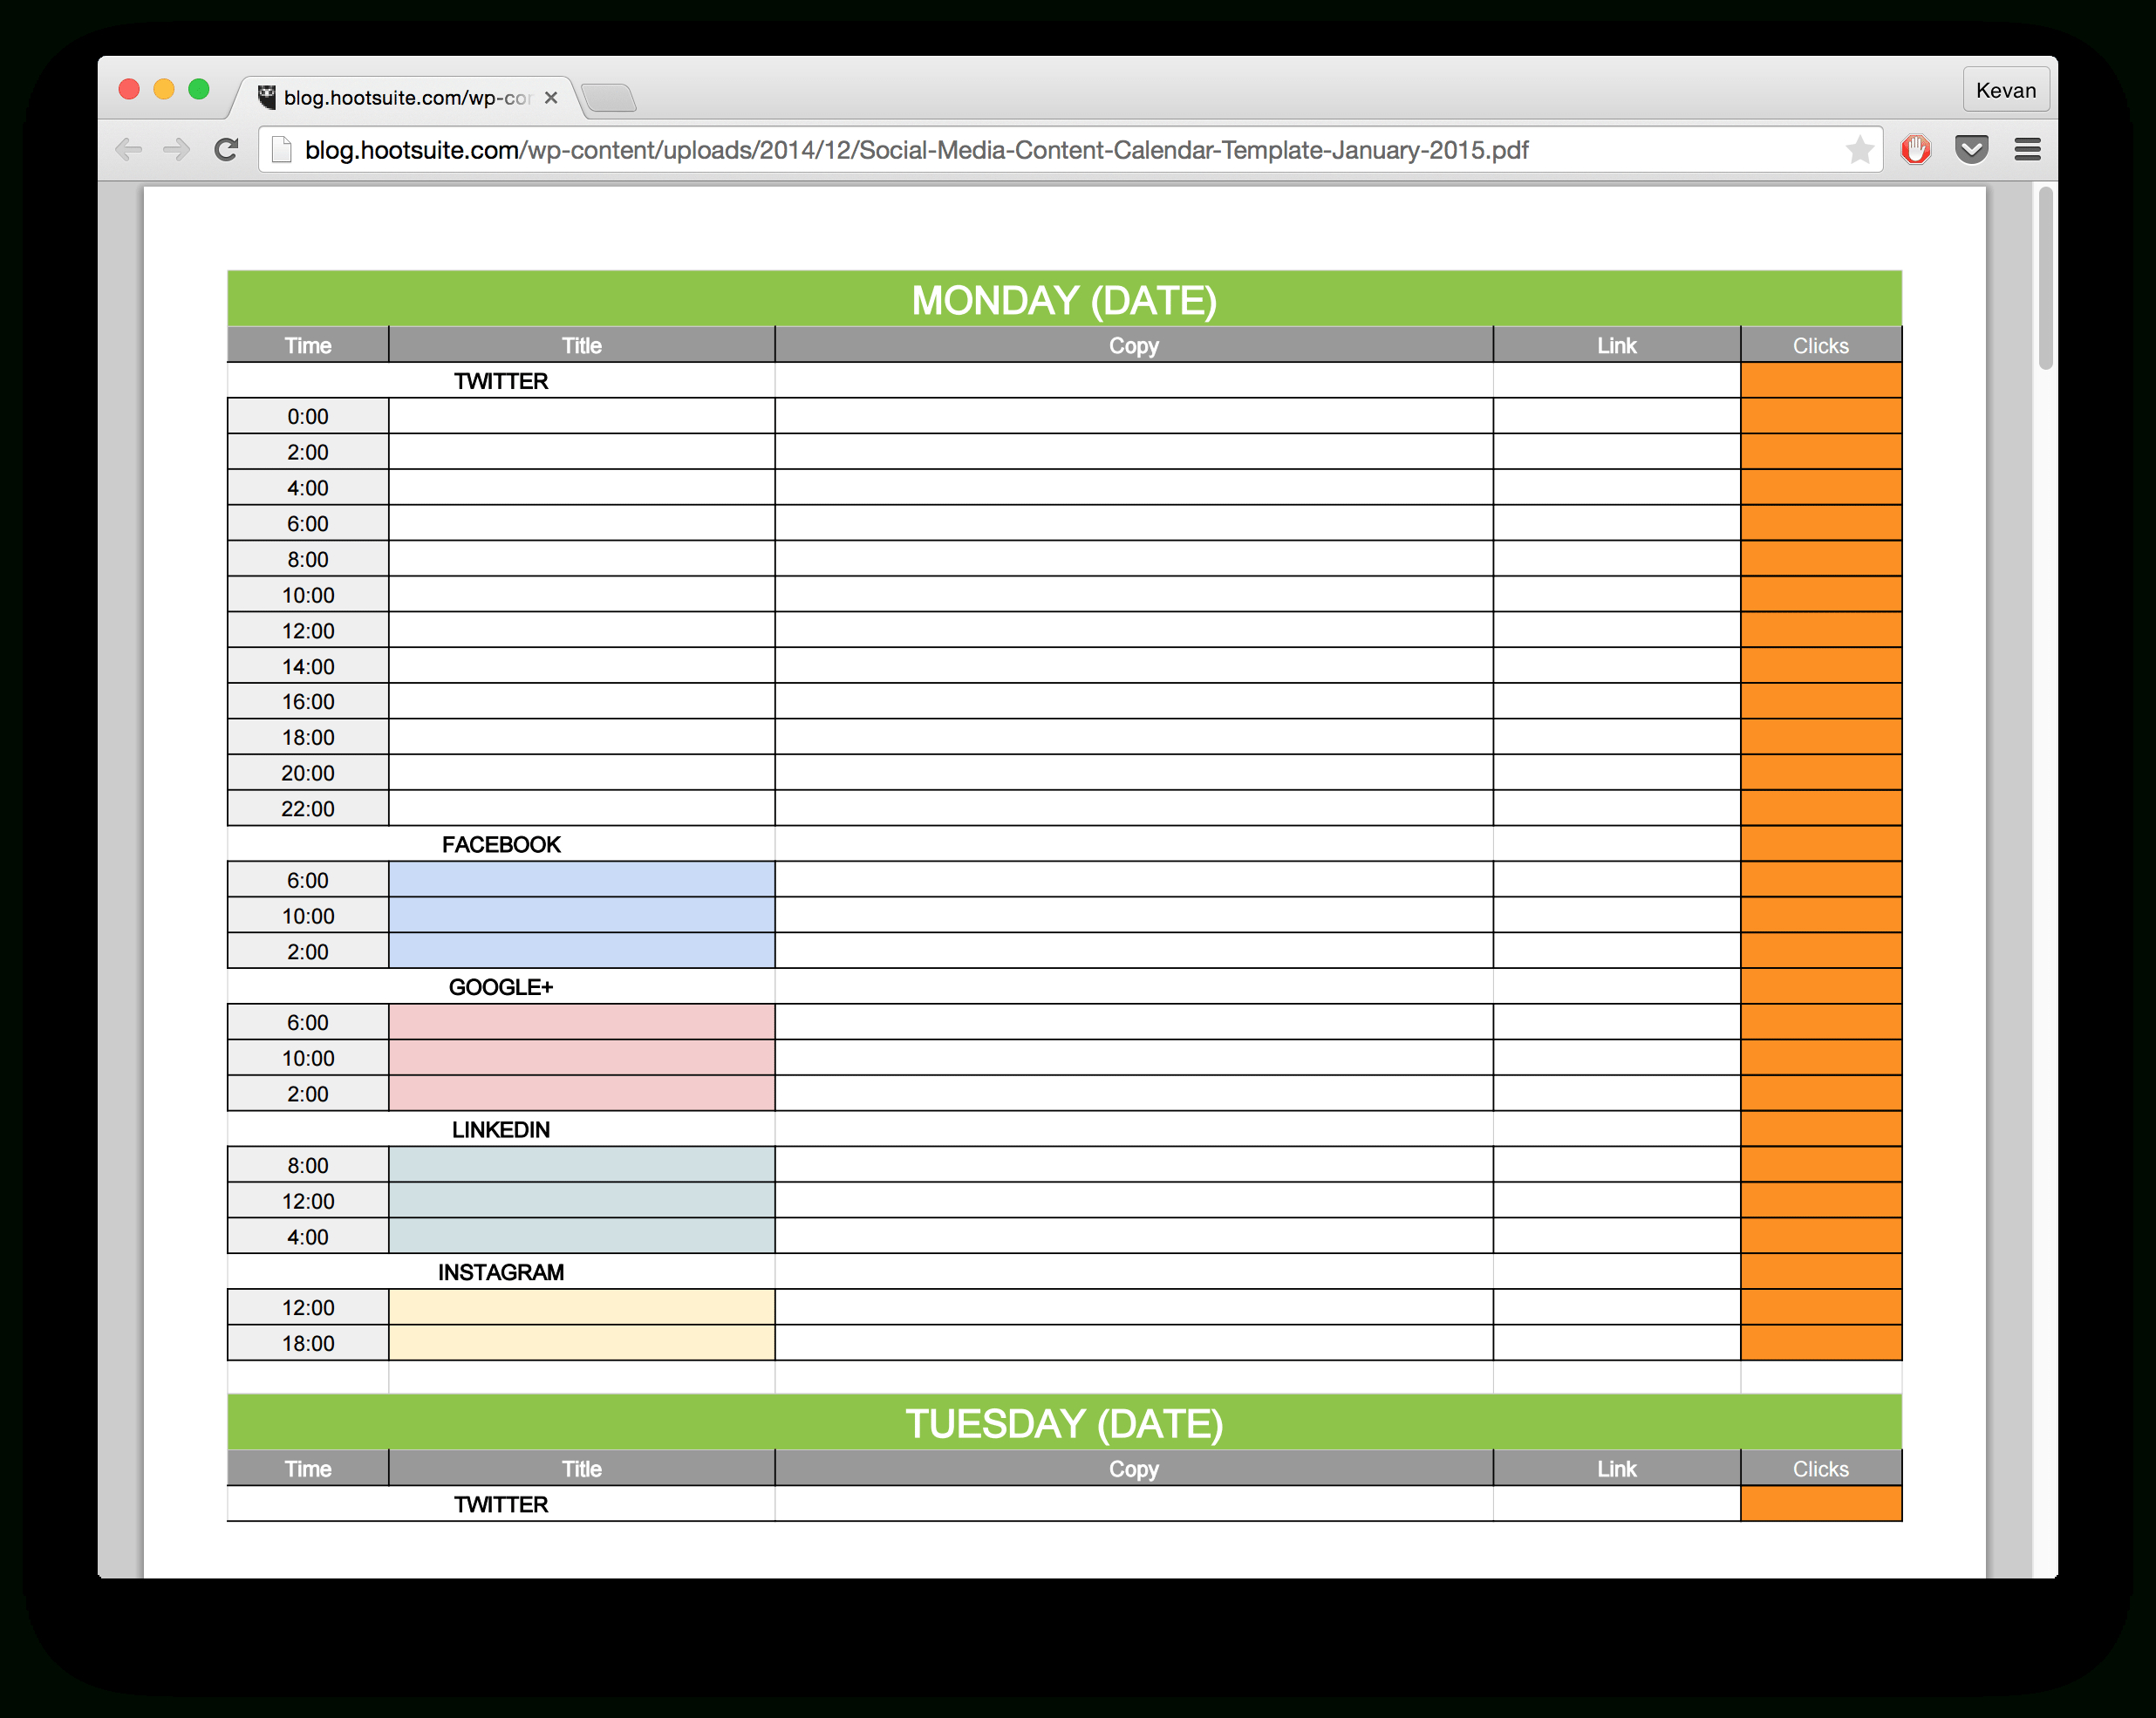 Social Media Spreadsheet Throughout 15 New Social Media Templates To Save You Even More Time